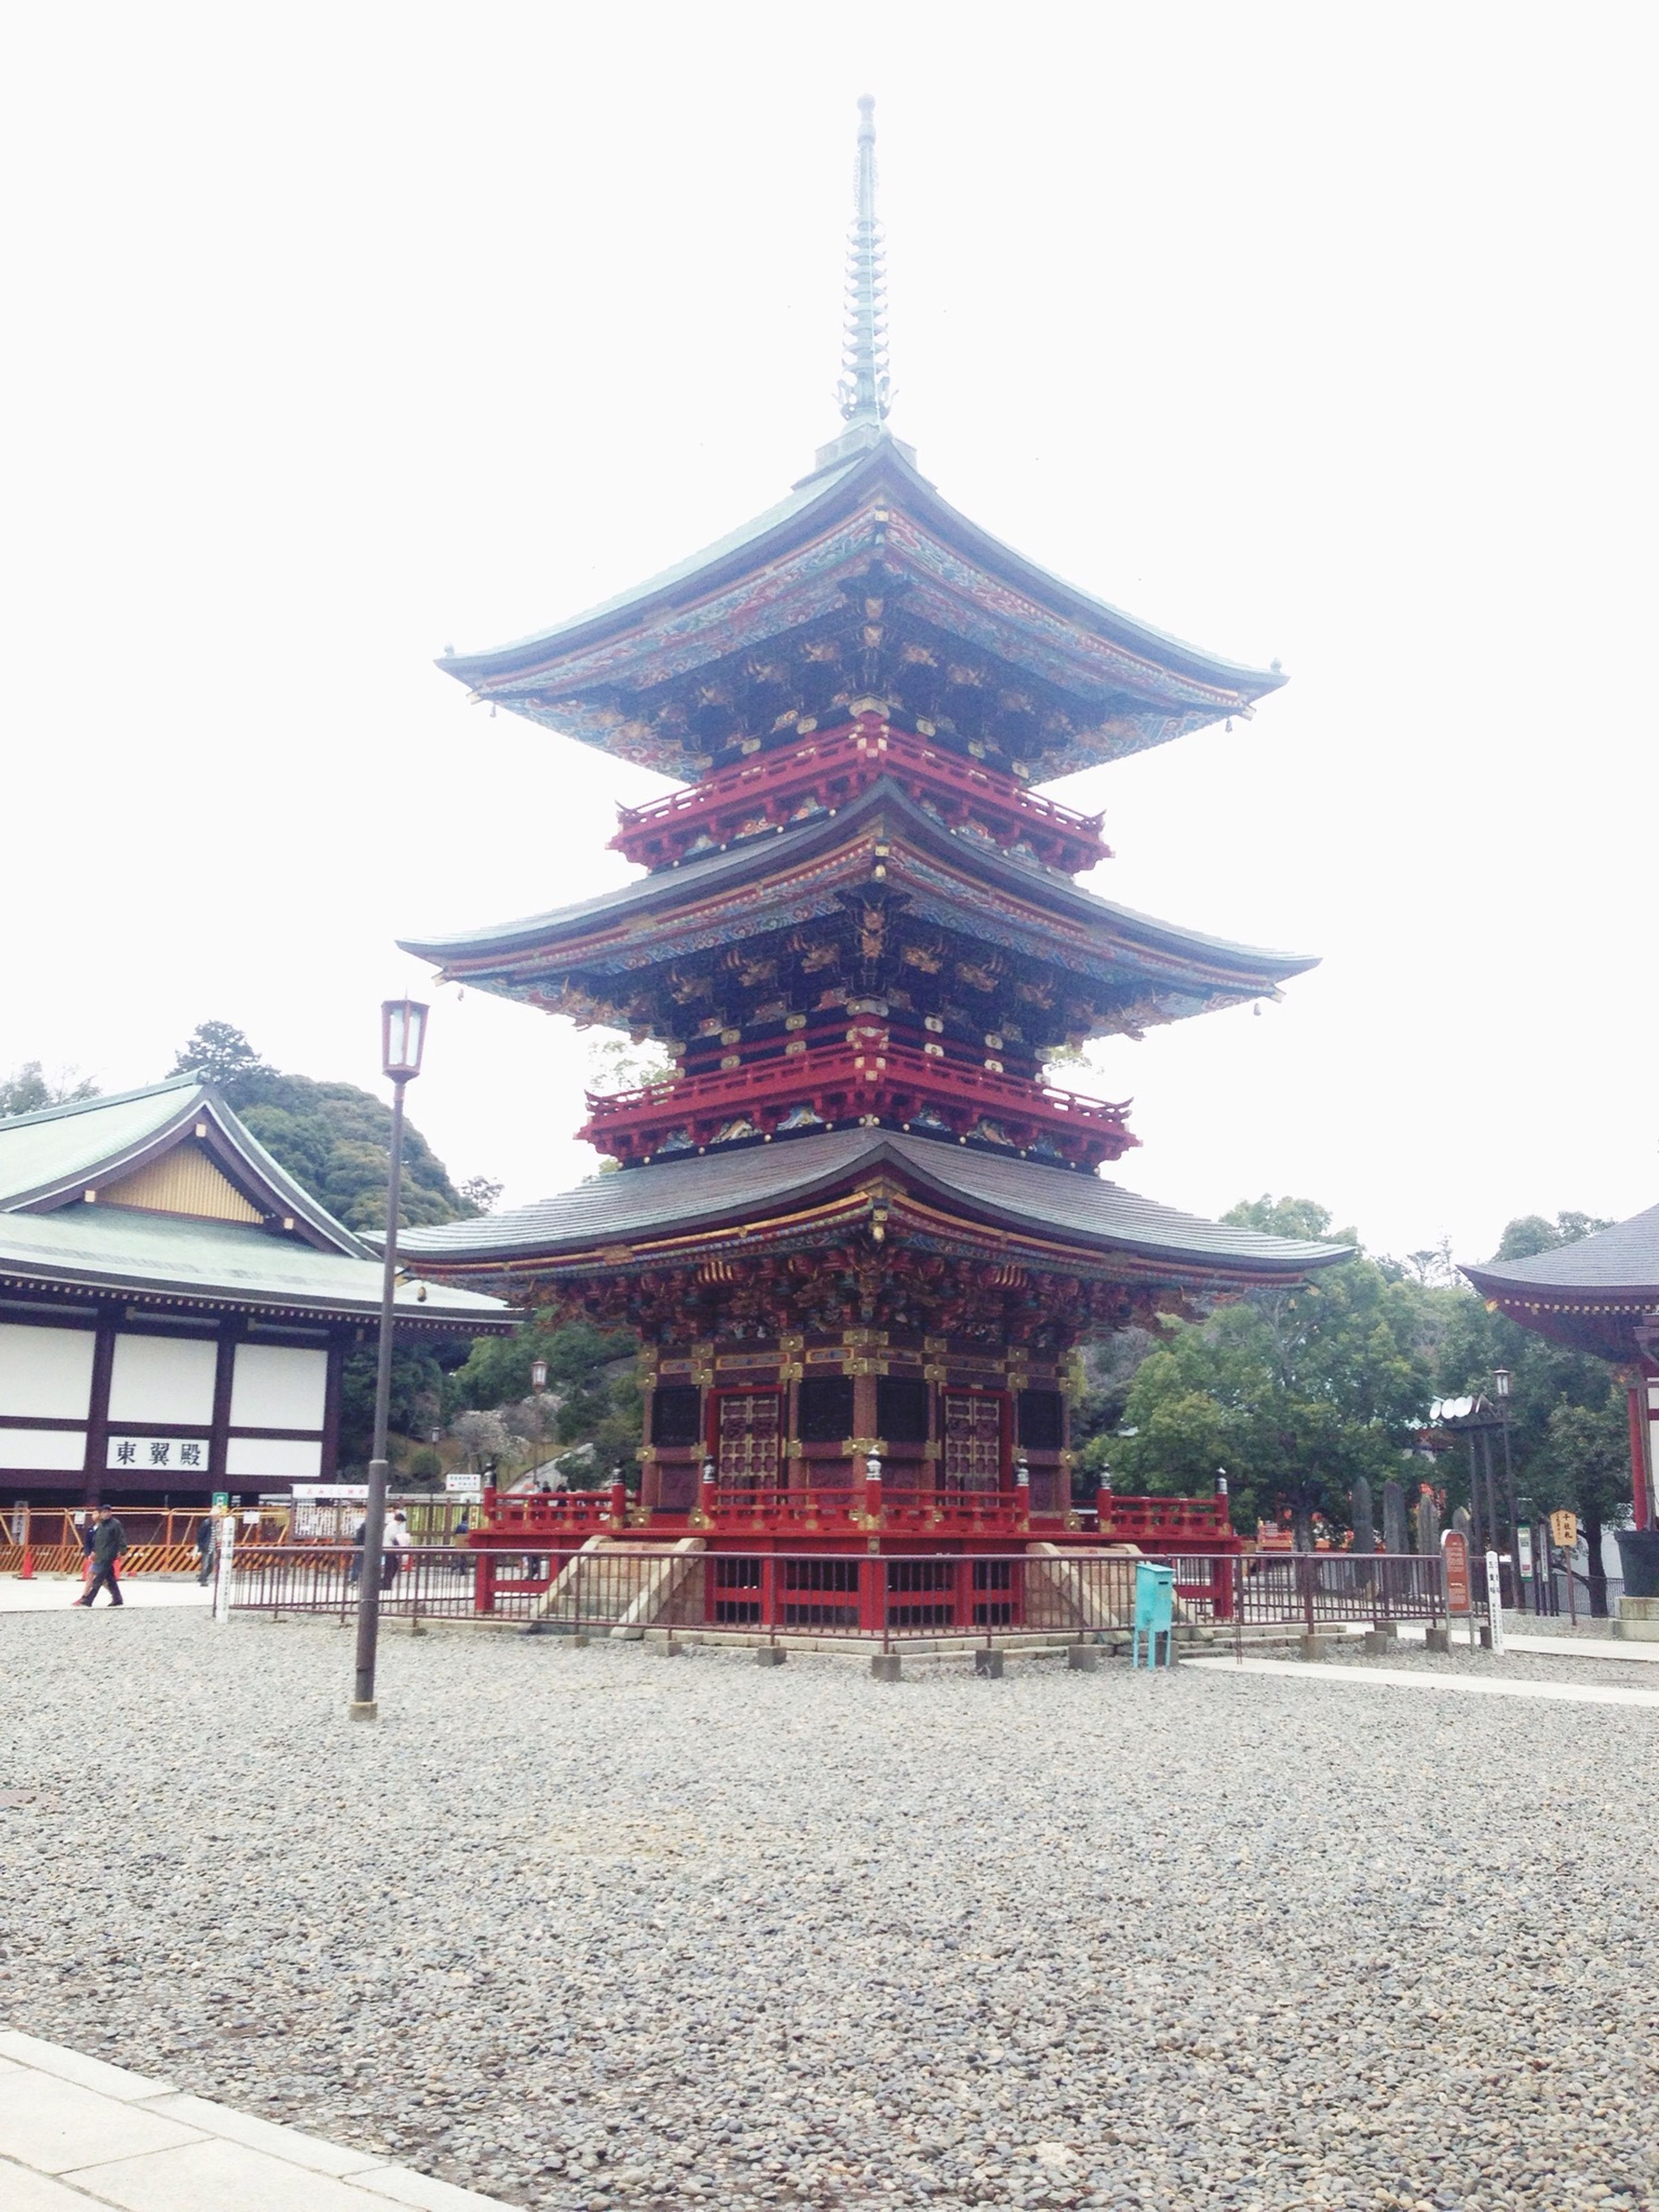 architecture, built structure, building exterior, religion, place of worship, spirituality, famous place, temple - building, travel destinations, tradition, tourism, clear sky, sky, travel, cultures, incidental people, temple, large group of people, pagoda